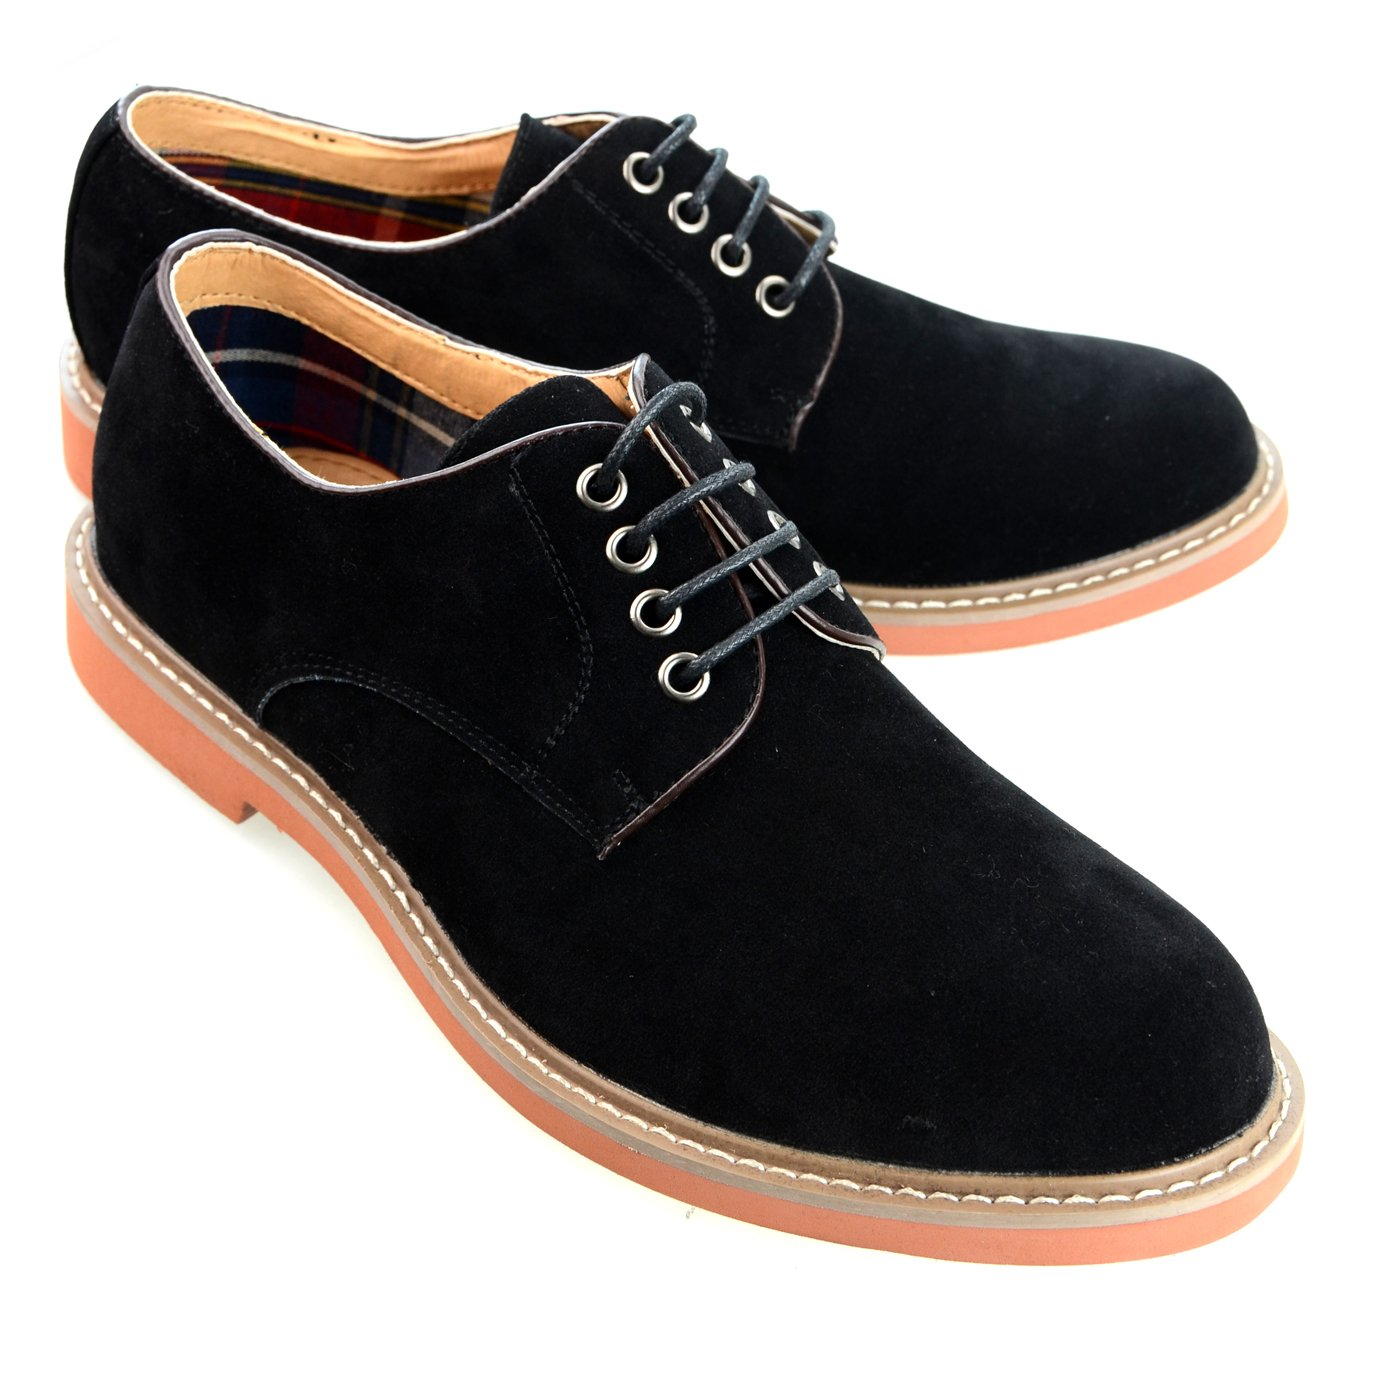 O-NINE Mens casual shoes mens fashion sneakers Derby Shoes High-Top Casual sneakers leather feel Lace-up Unisex Plain toe Mule Antique Low-Top Sneaker Boots Color Stitching Mountain boots black 43 EU (US Men's 10 M)